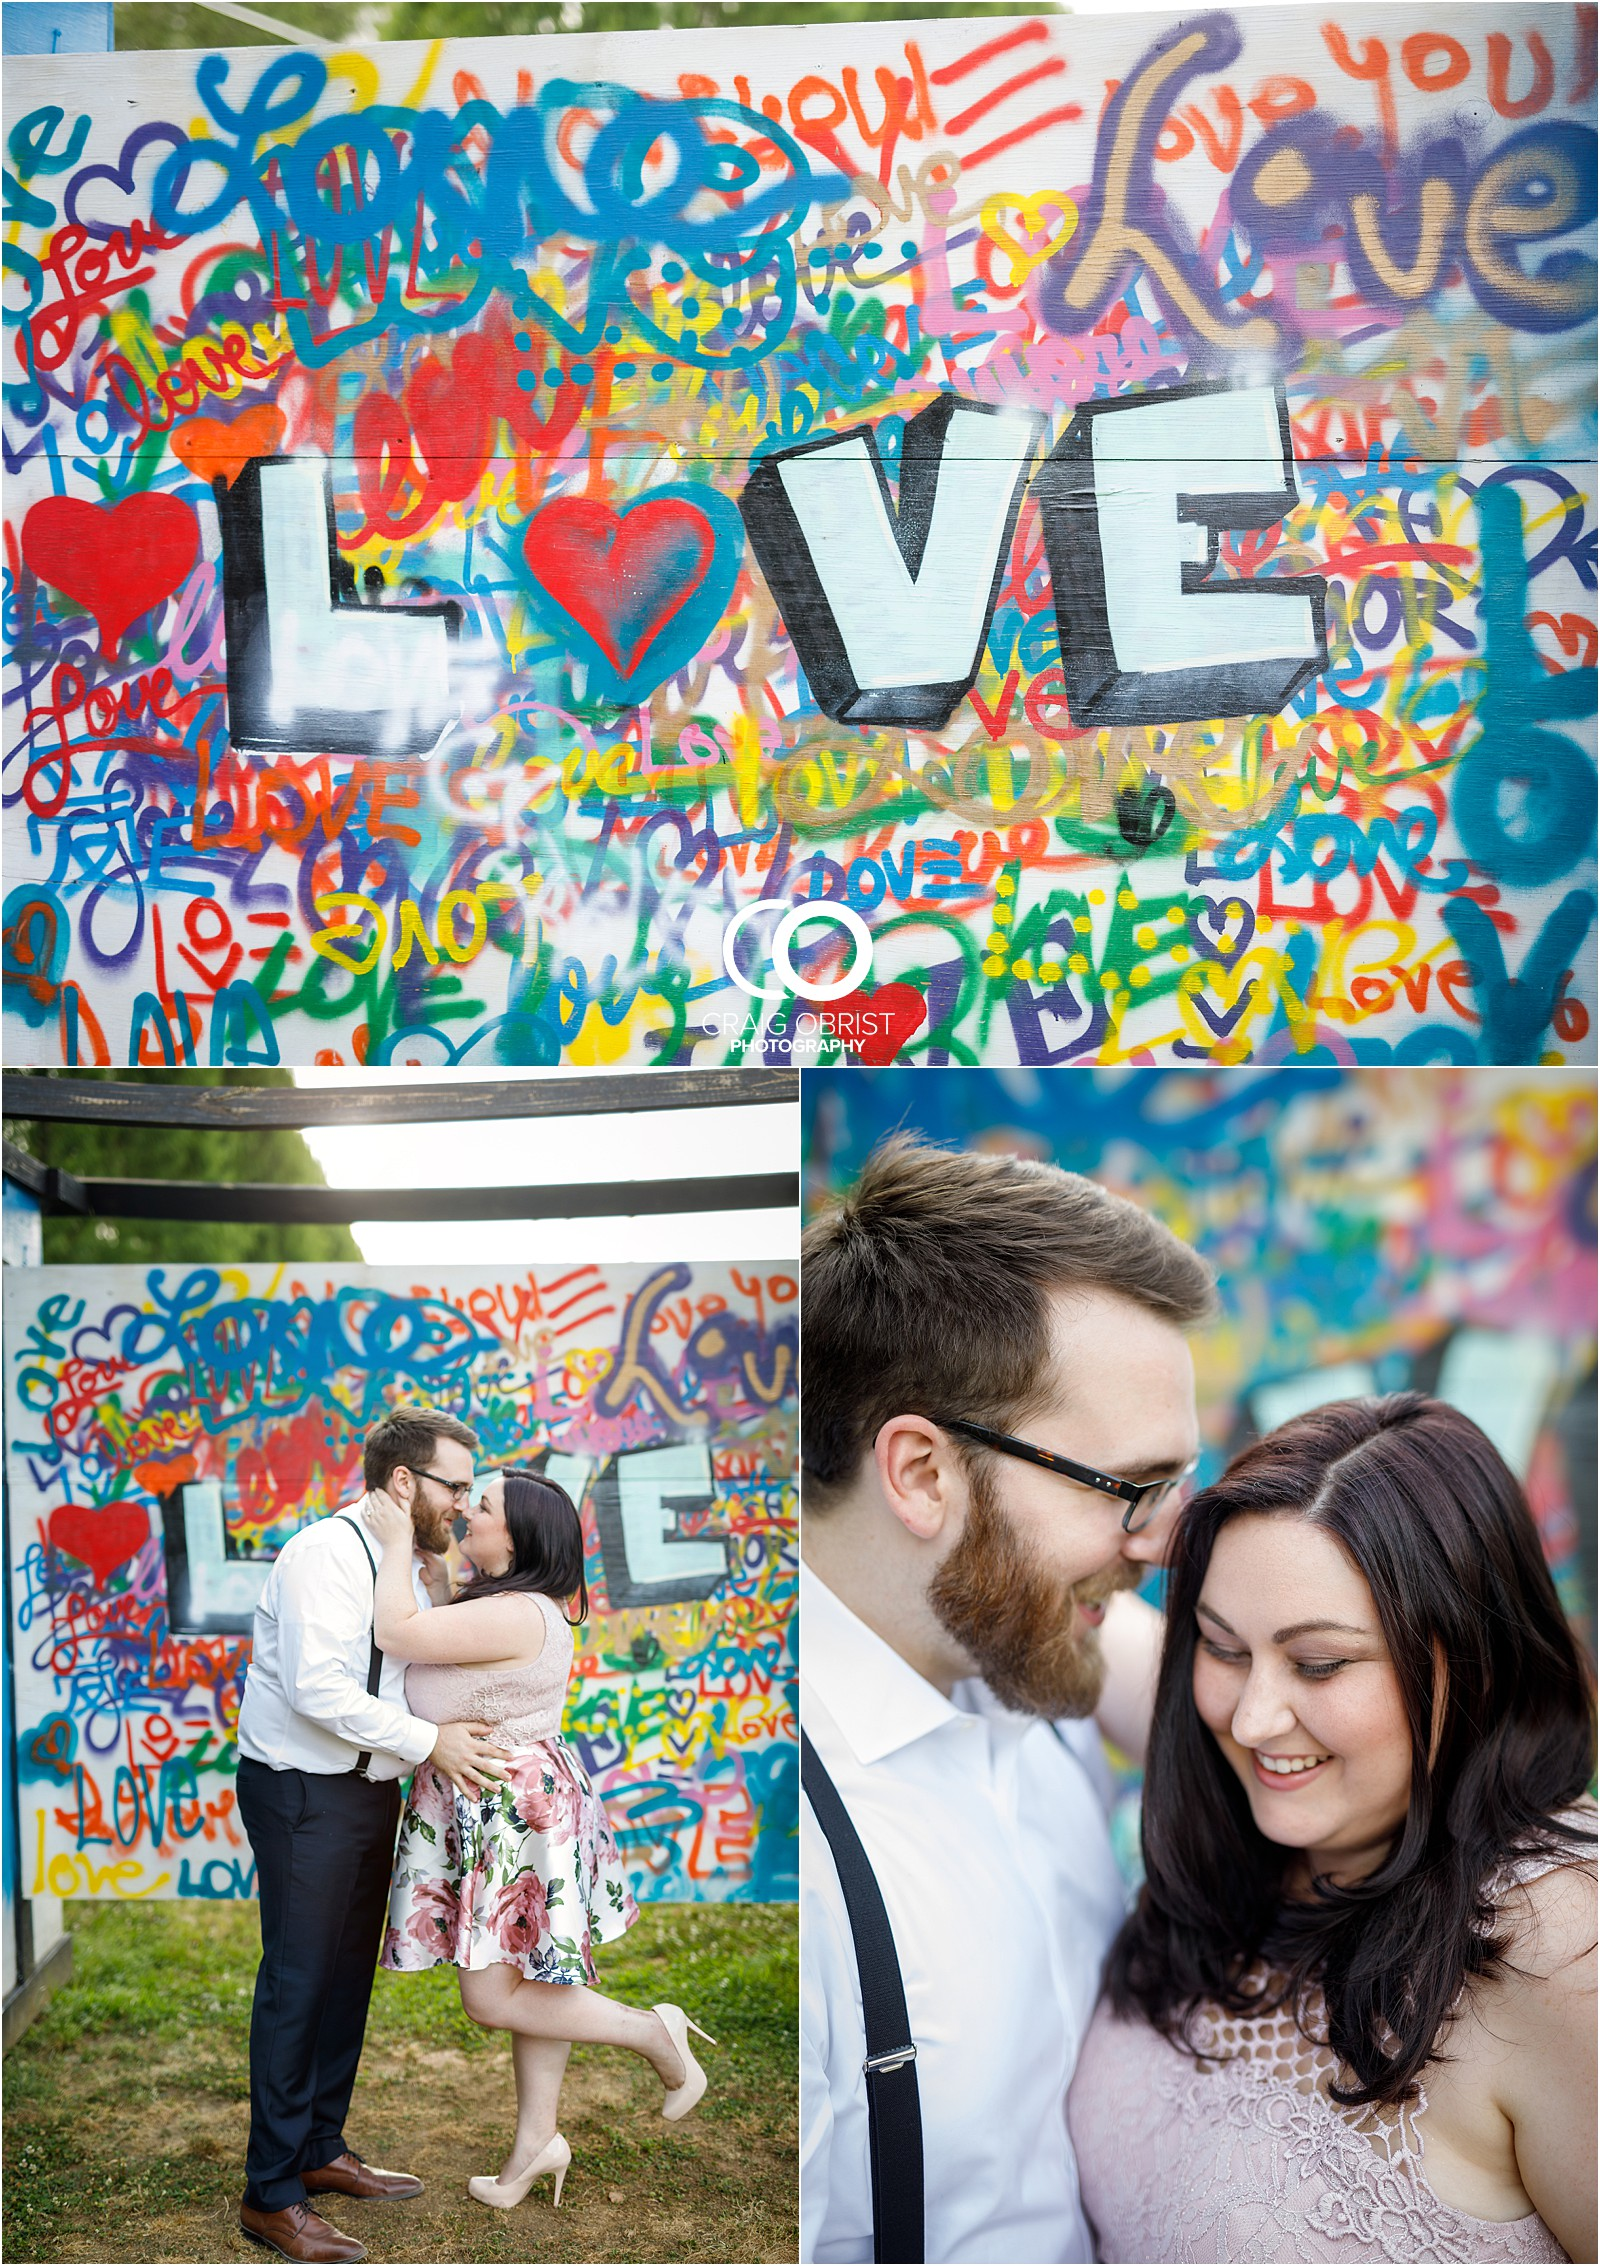 Ponce city markey Atlanta Beltline Piedmont Park engagement portraits_0001.jpg